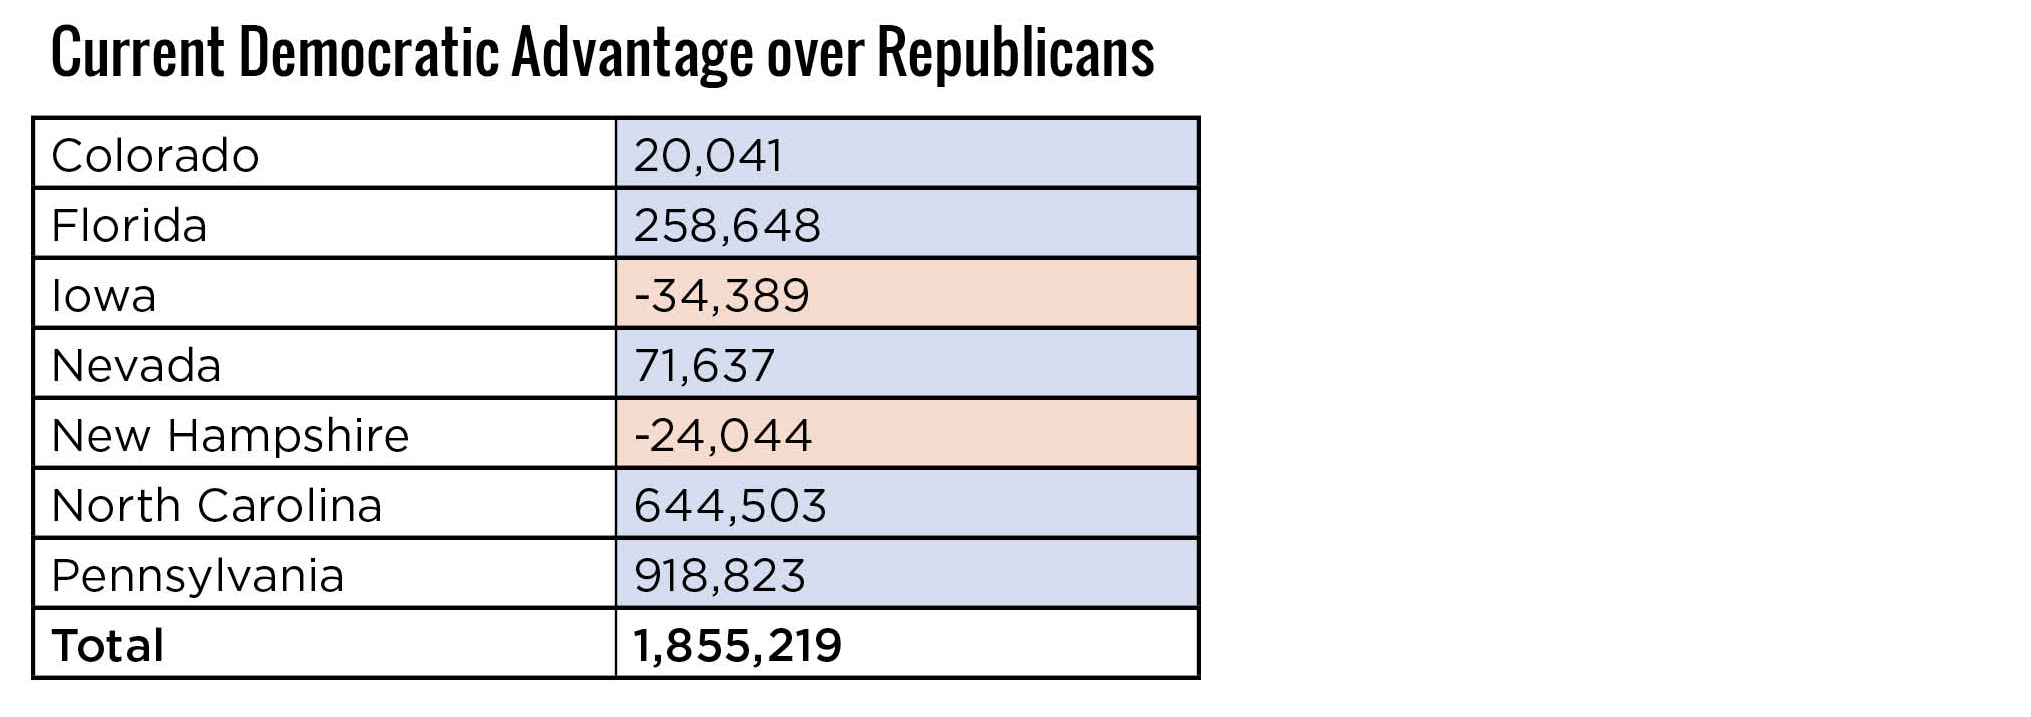 Democratic Registration Advantage over Republicans in Battleground States